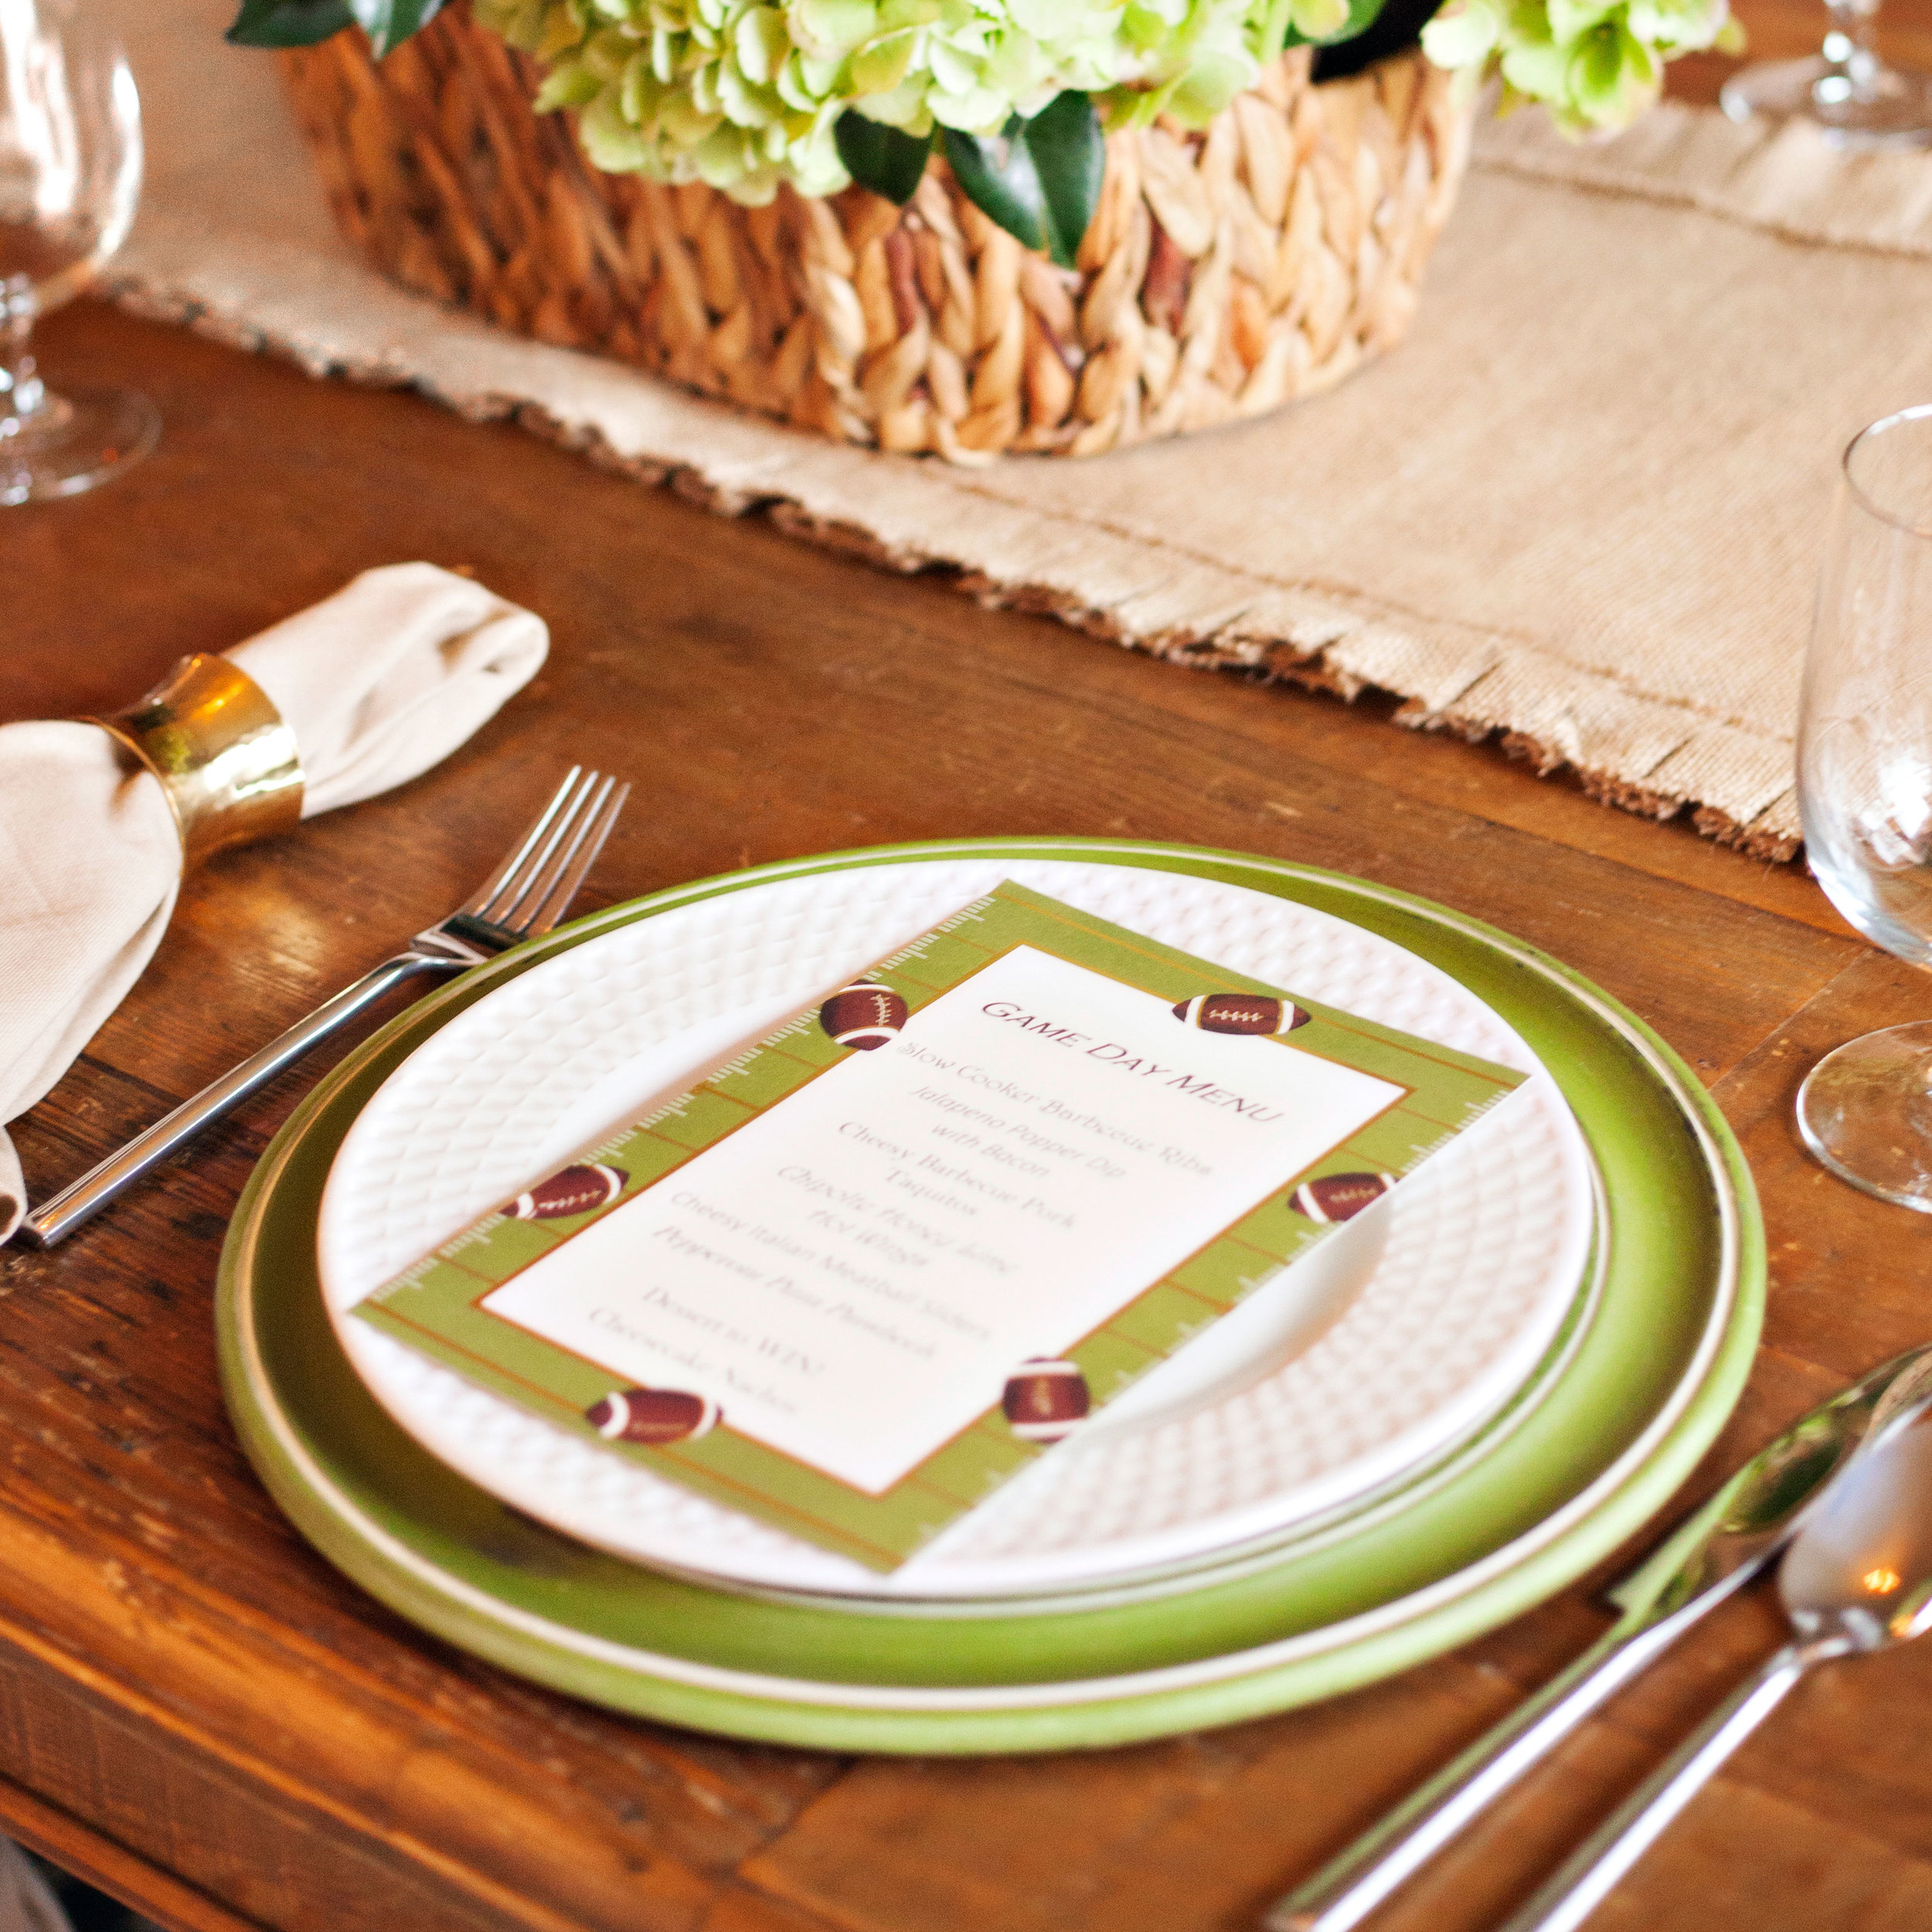 Game Day - Tablescape Includes:Burlap Table Runner, Green Charger, Plate, Napkin, Gold Napkin Ring, Game Day Menu (Printed prior to delivery, if desired)$14.99 per tablescapeBring your favorite sport to your tablescape with this fun inspired table setting. The burlap runner, paired with a football theme, will treat your guests to an evening of entertainment as you enjoy dinner while rooting for their team!